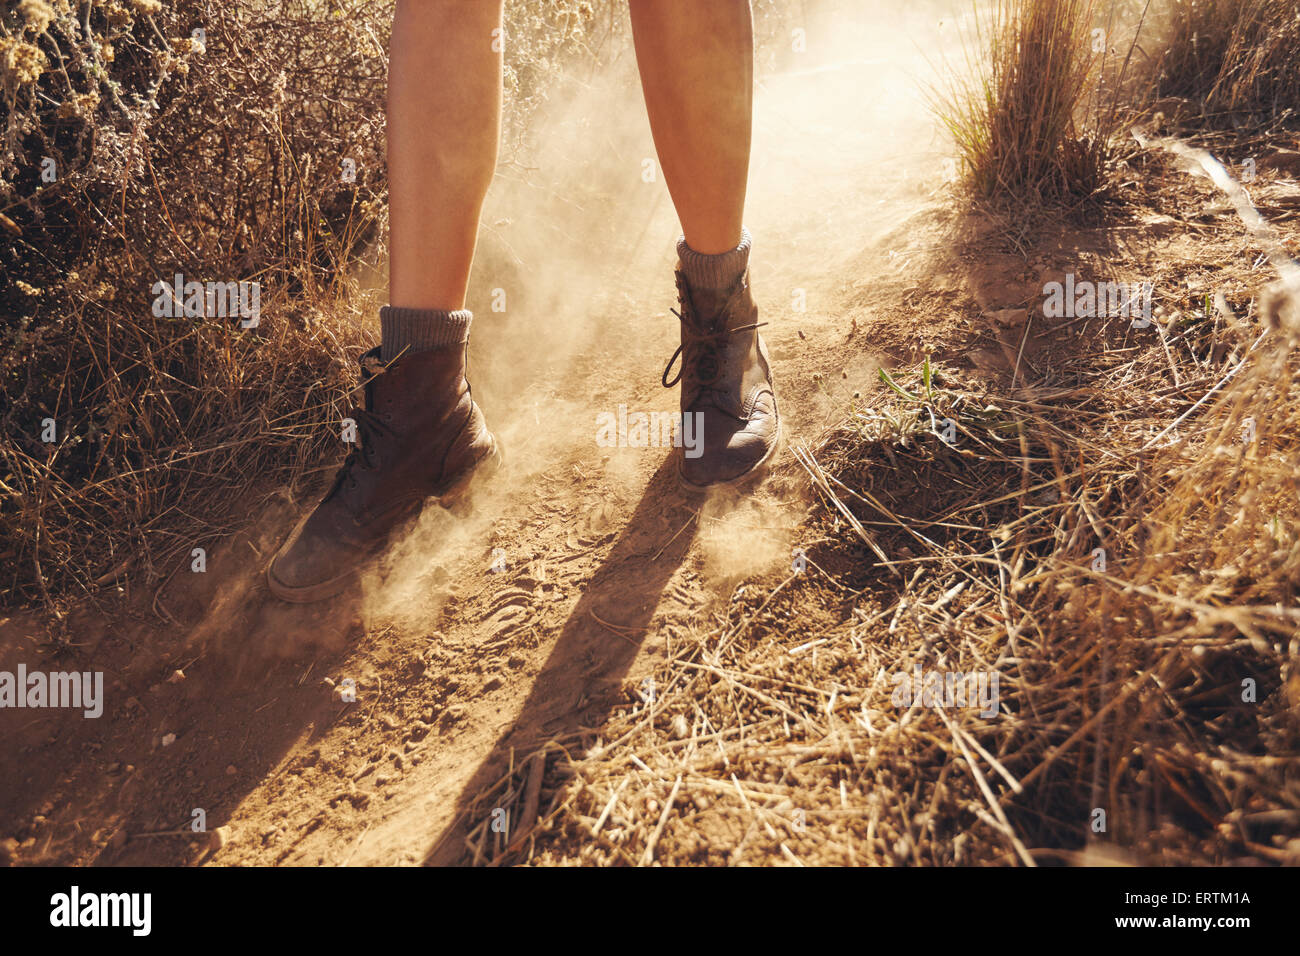 Young woman's feet as she hikes on a mountain trail with puff of dust. Woman hiking on dirt path in countryside. - Stock Image